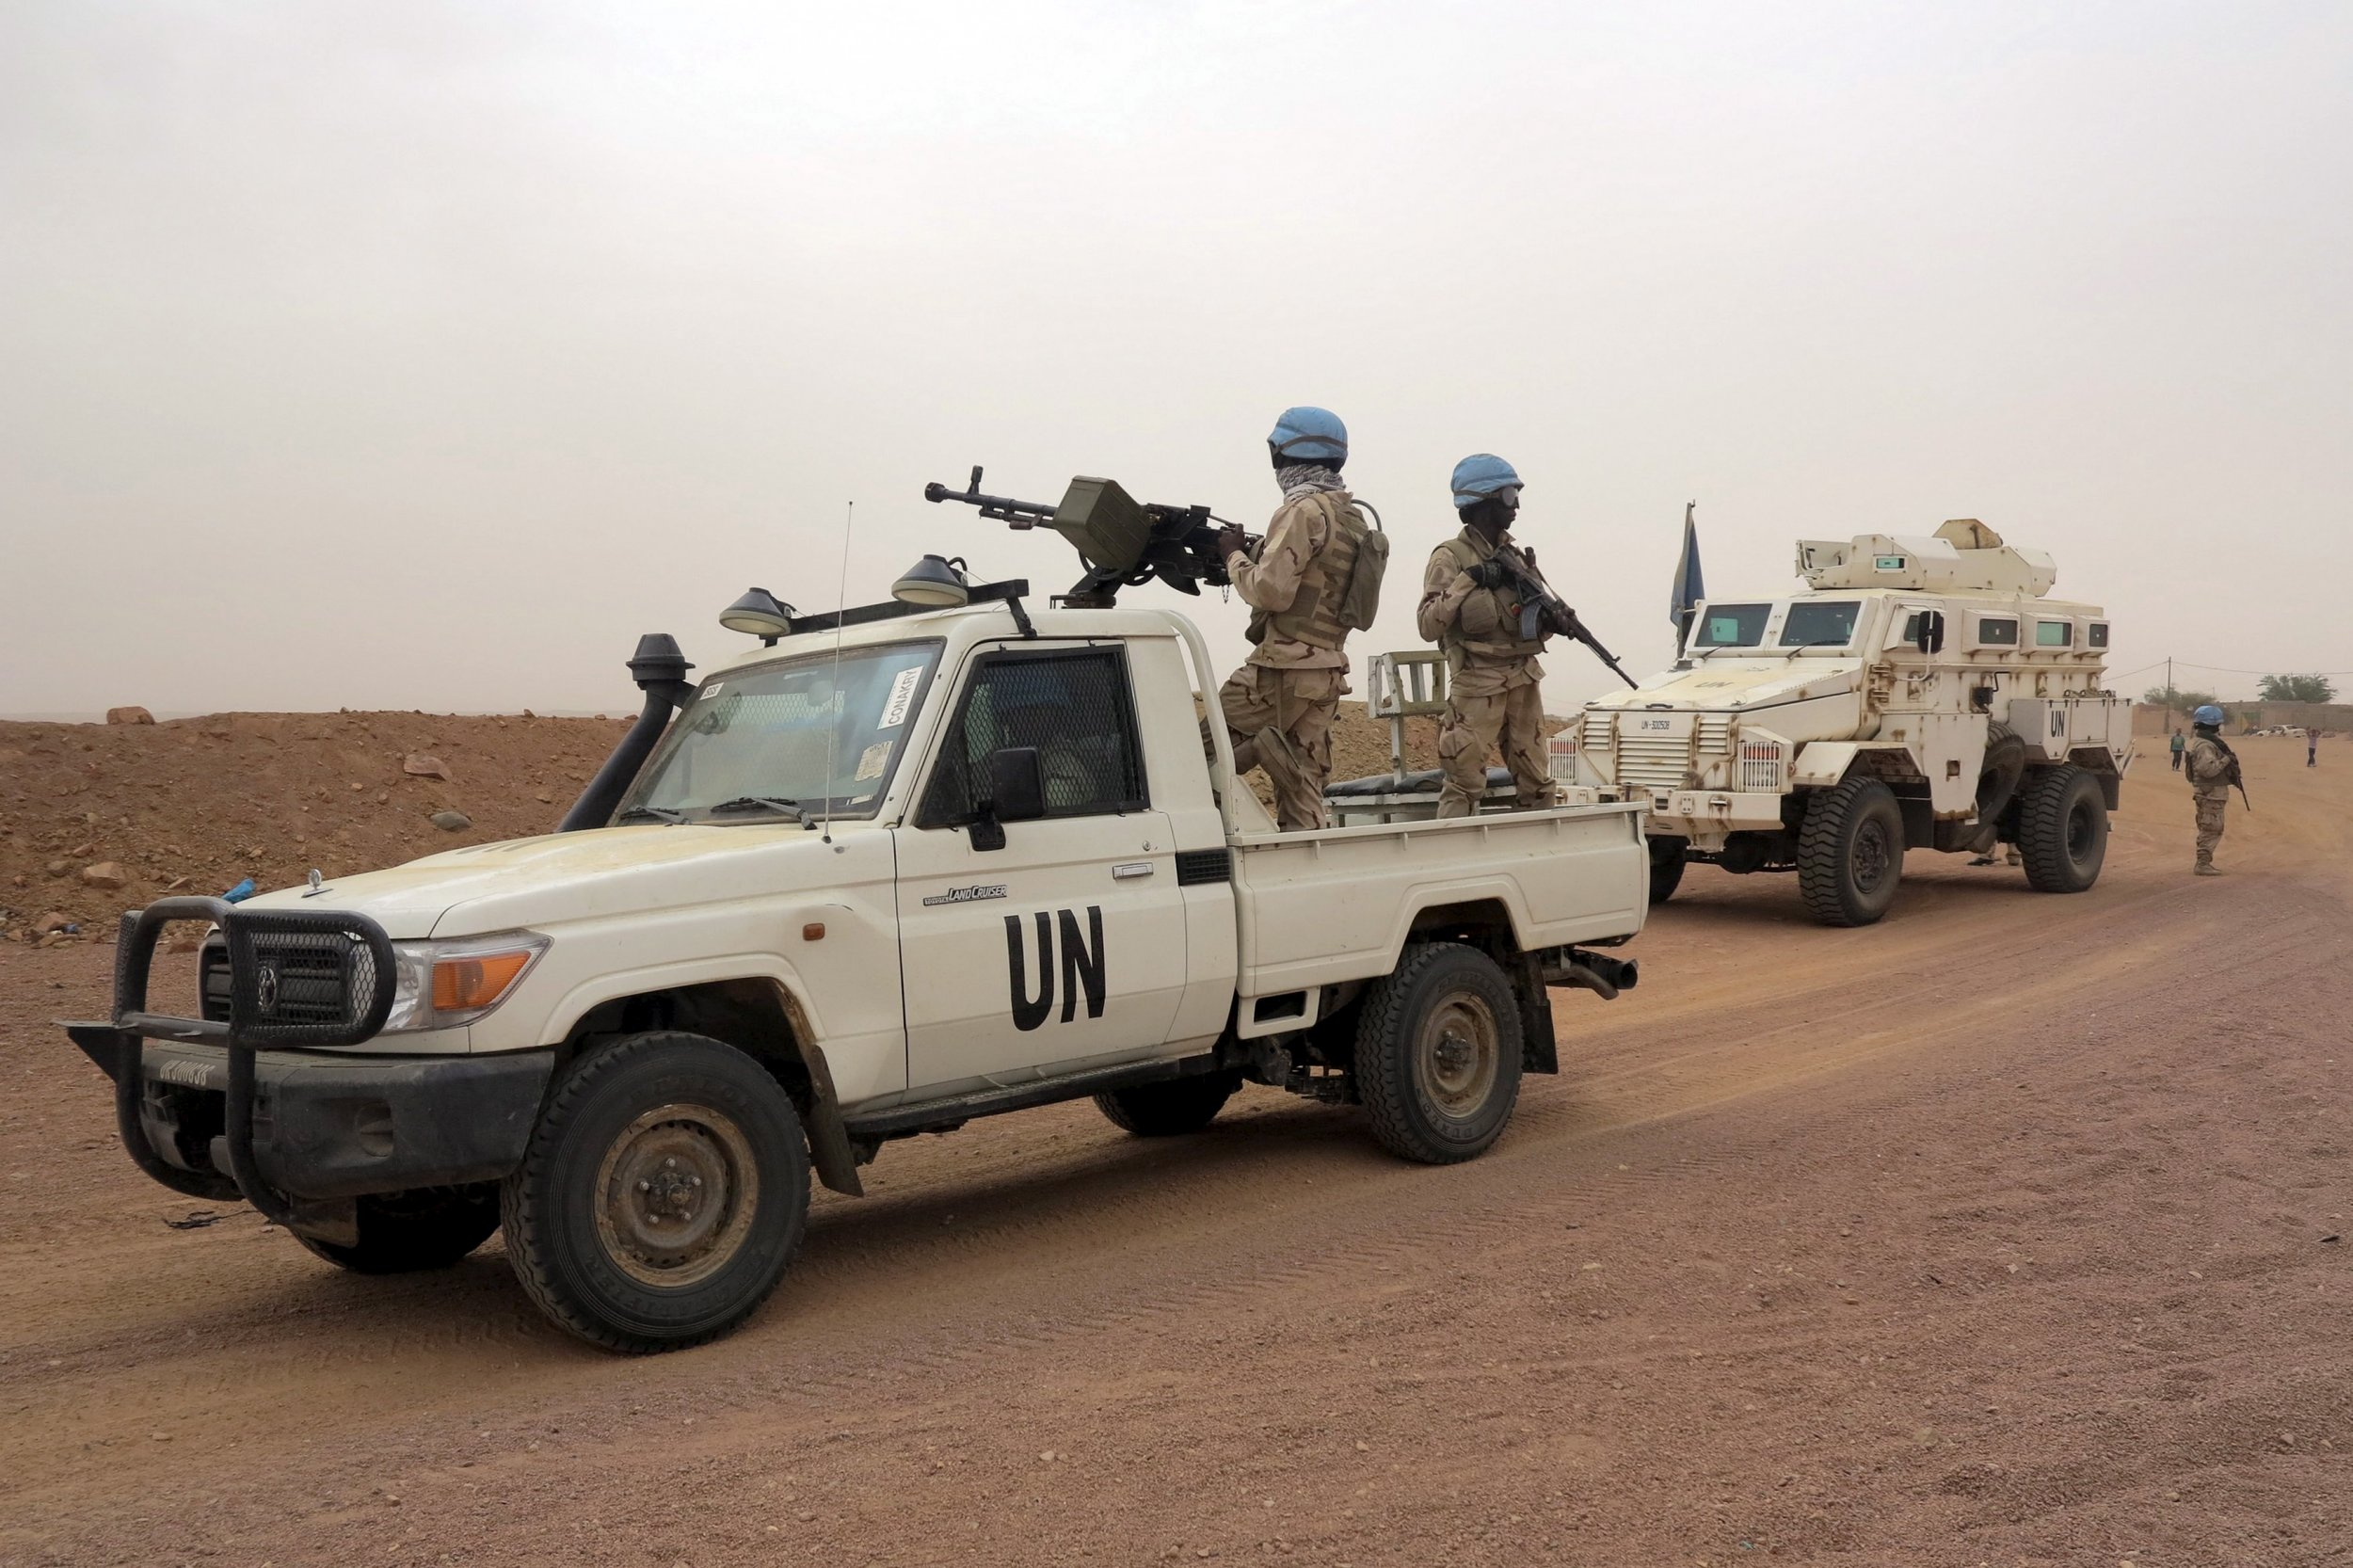 United Nations peacekeepers in Kidal, Mali.